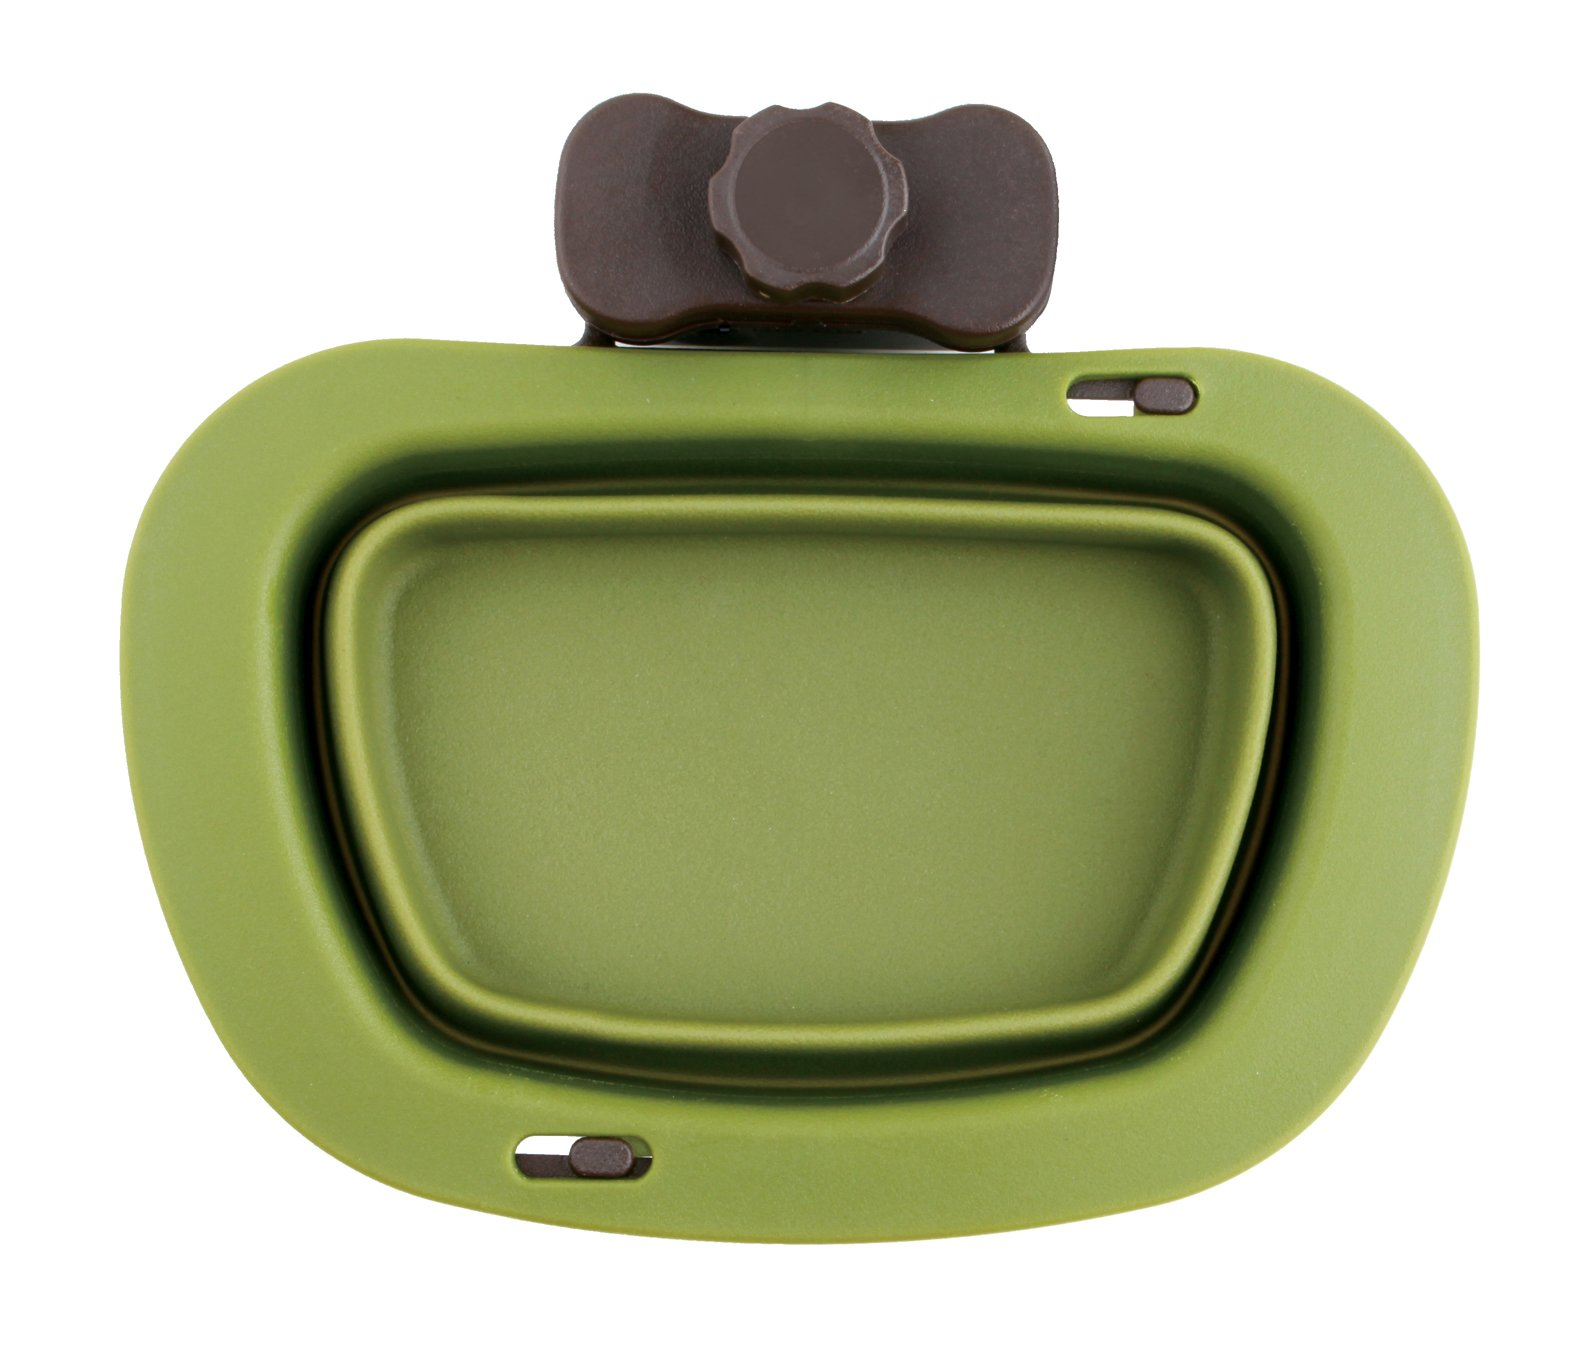 Dexas Popware for Pets Pivot Collapsible Kennel Cup, Large, Green by Dexas